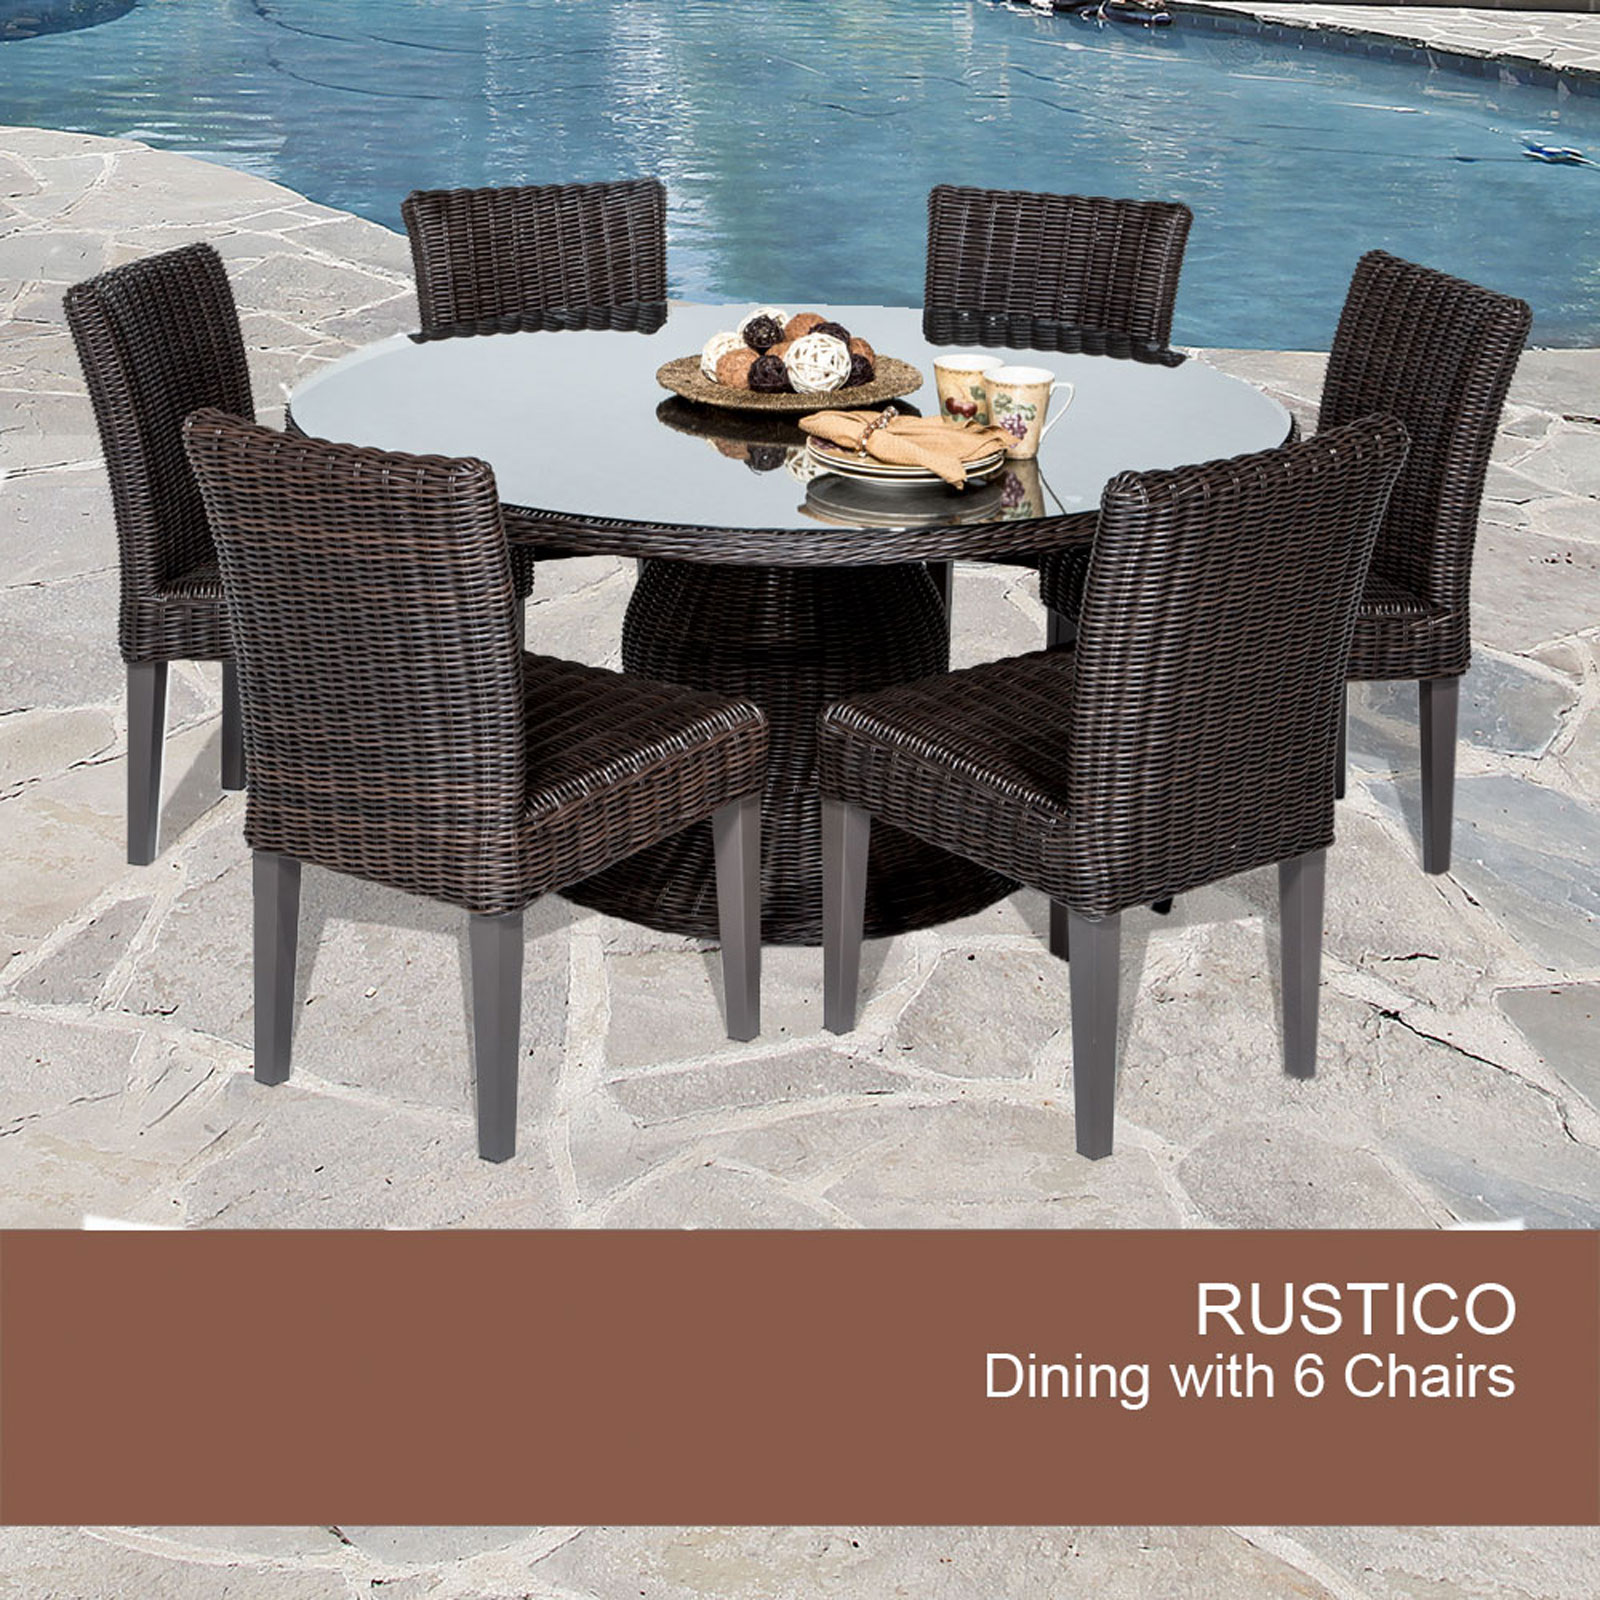 Outdoor Furniture Dining Set Sale Outdoor Patio Dining Table Chairs Patio Sets On Sale